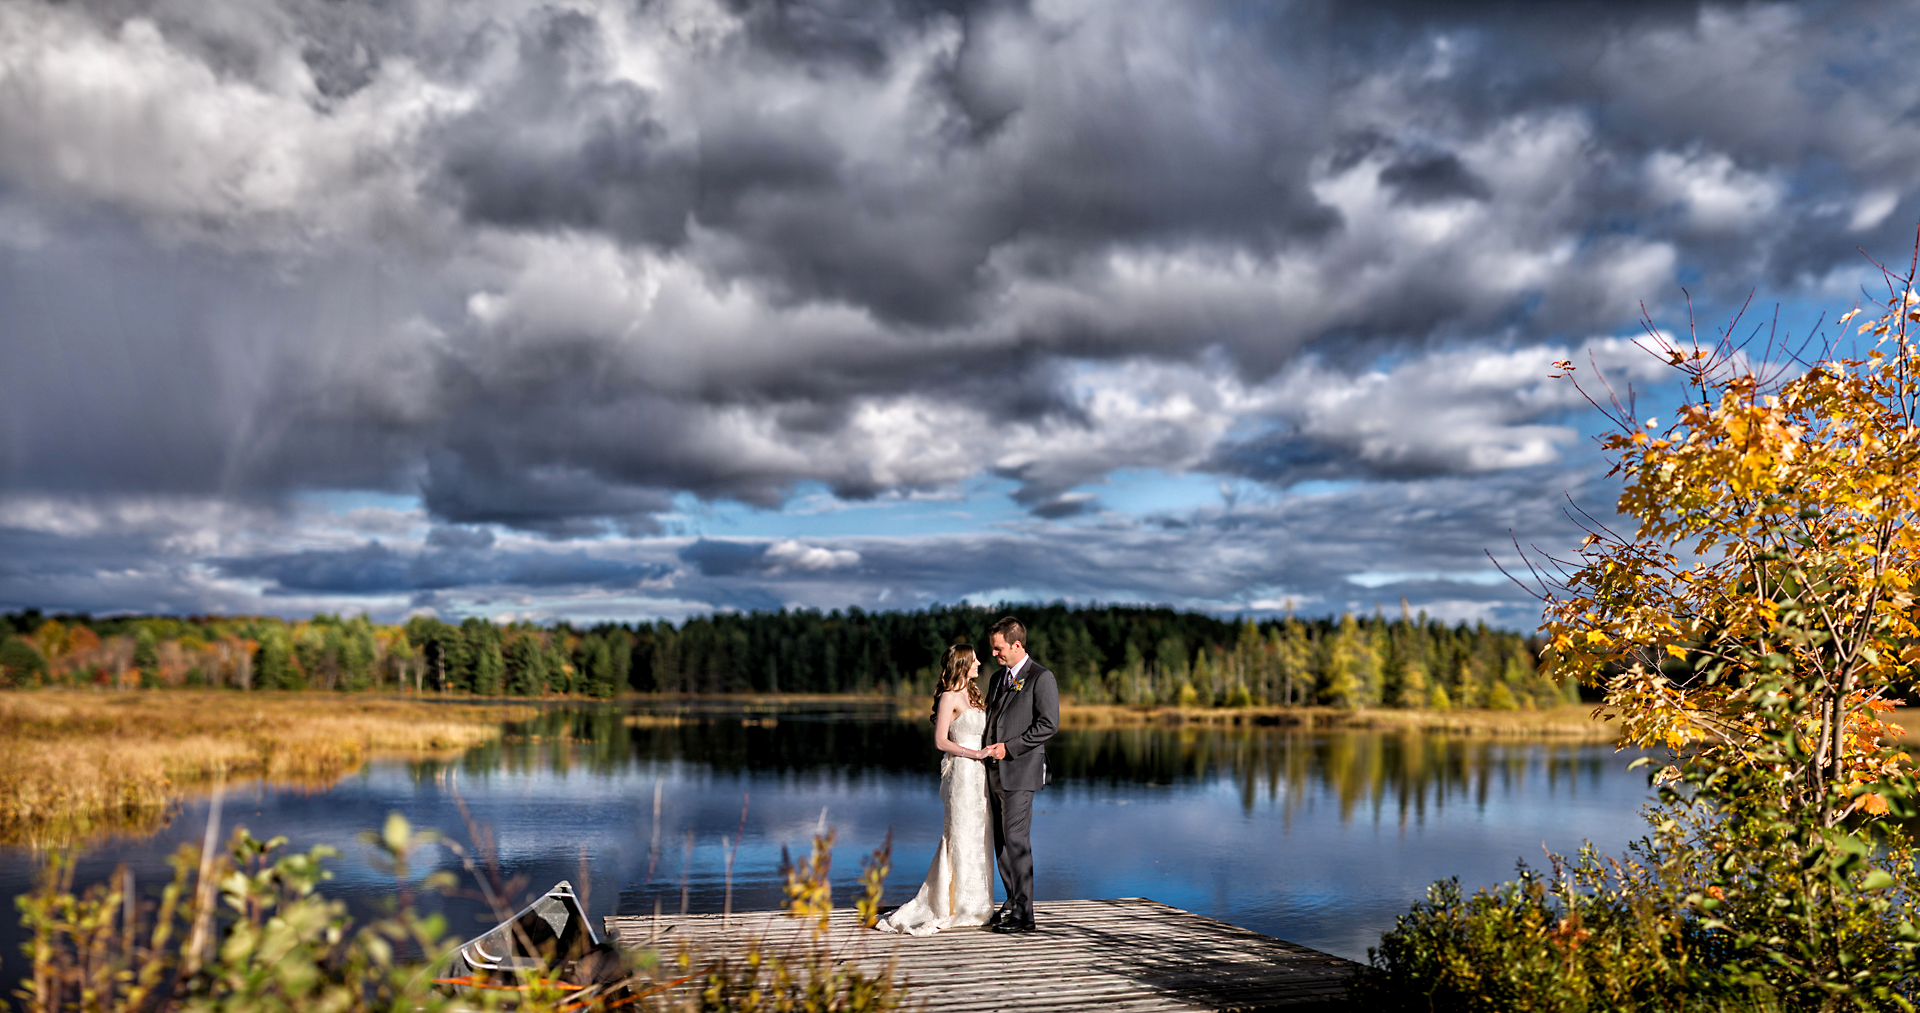 Nathan & Linda | Brooksfield Farms Wedding | Muskoka Wedding Photography01